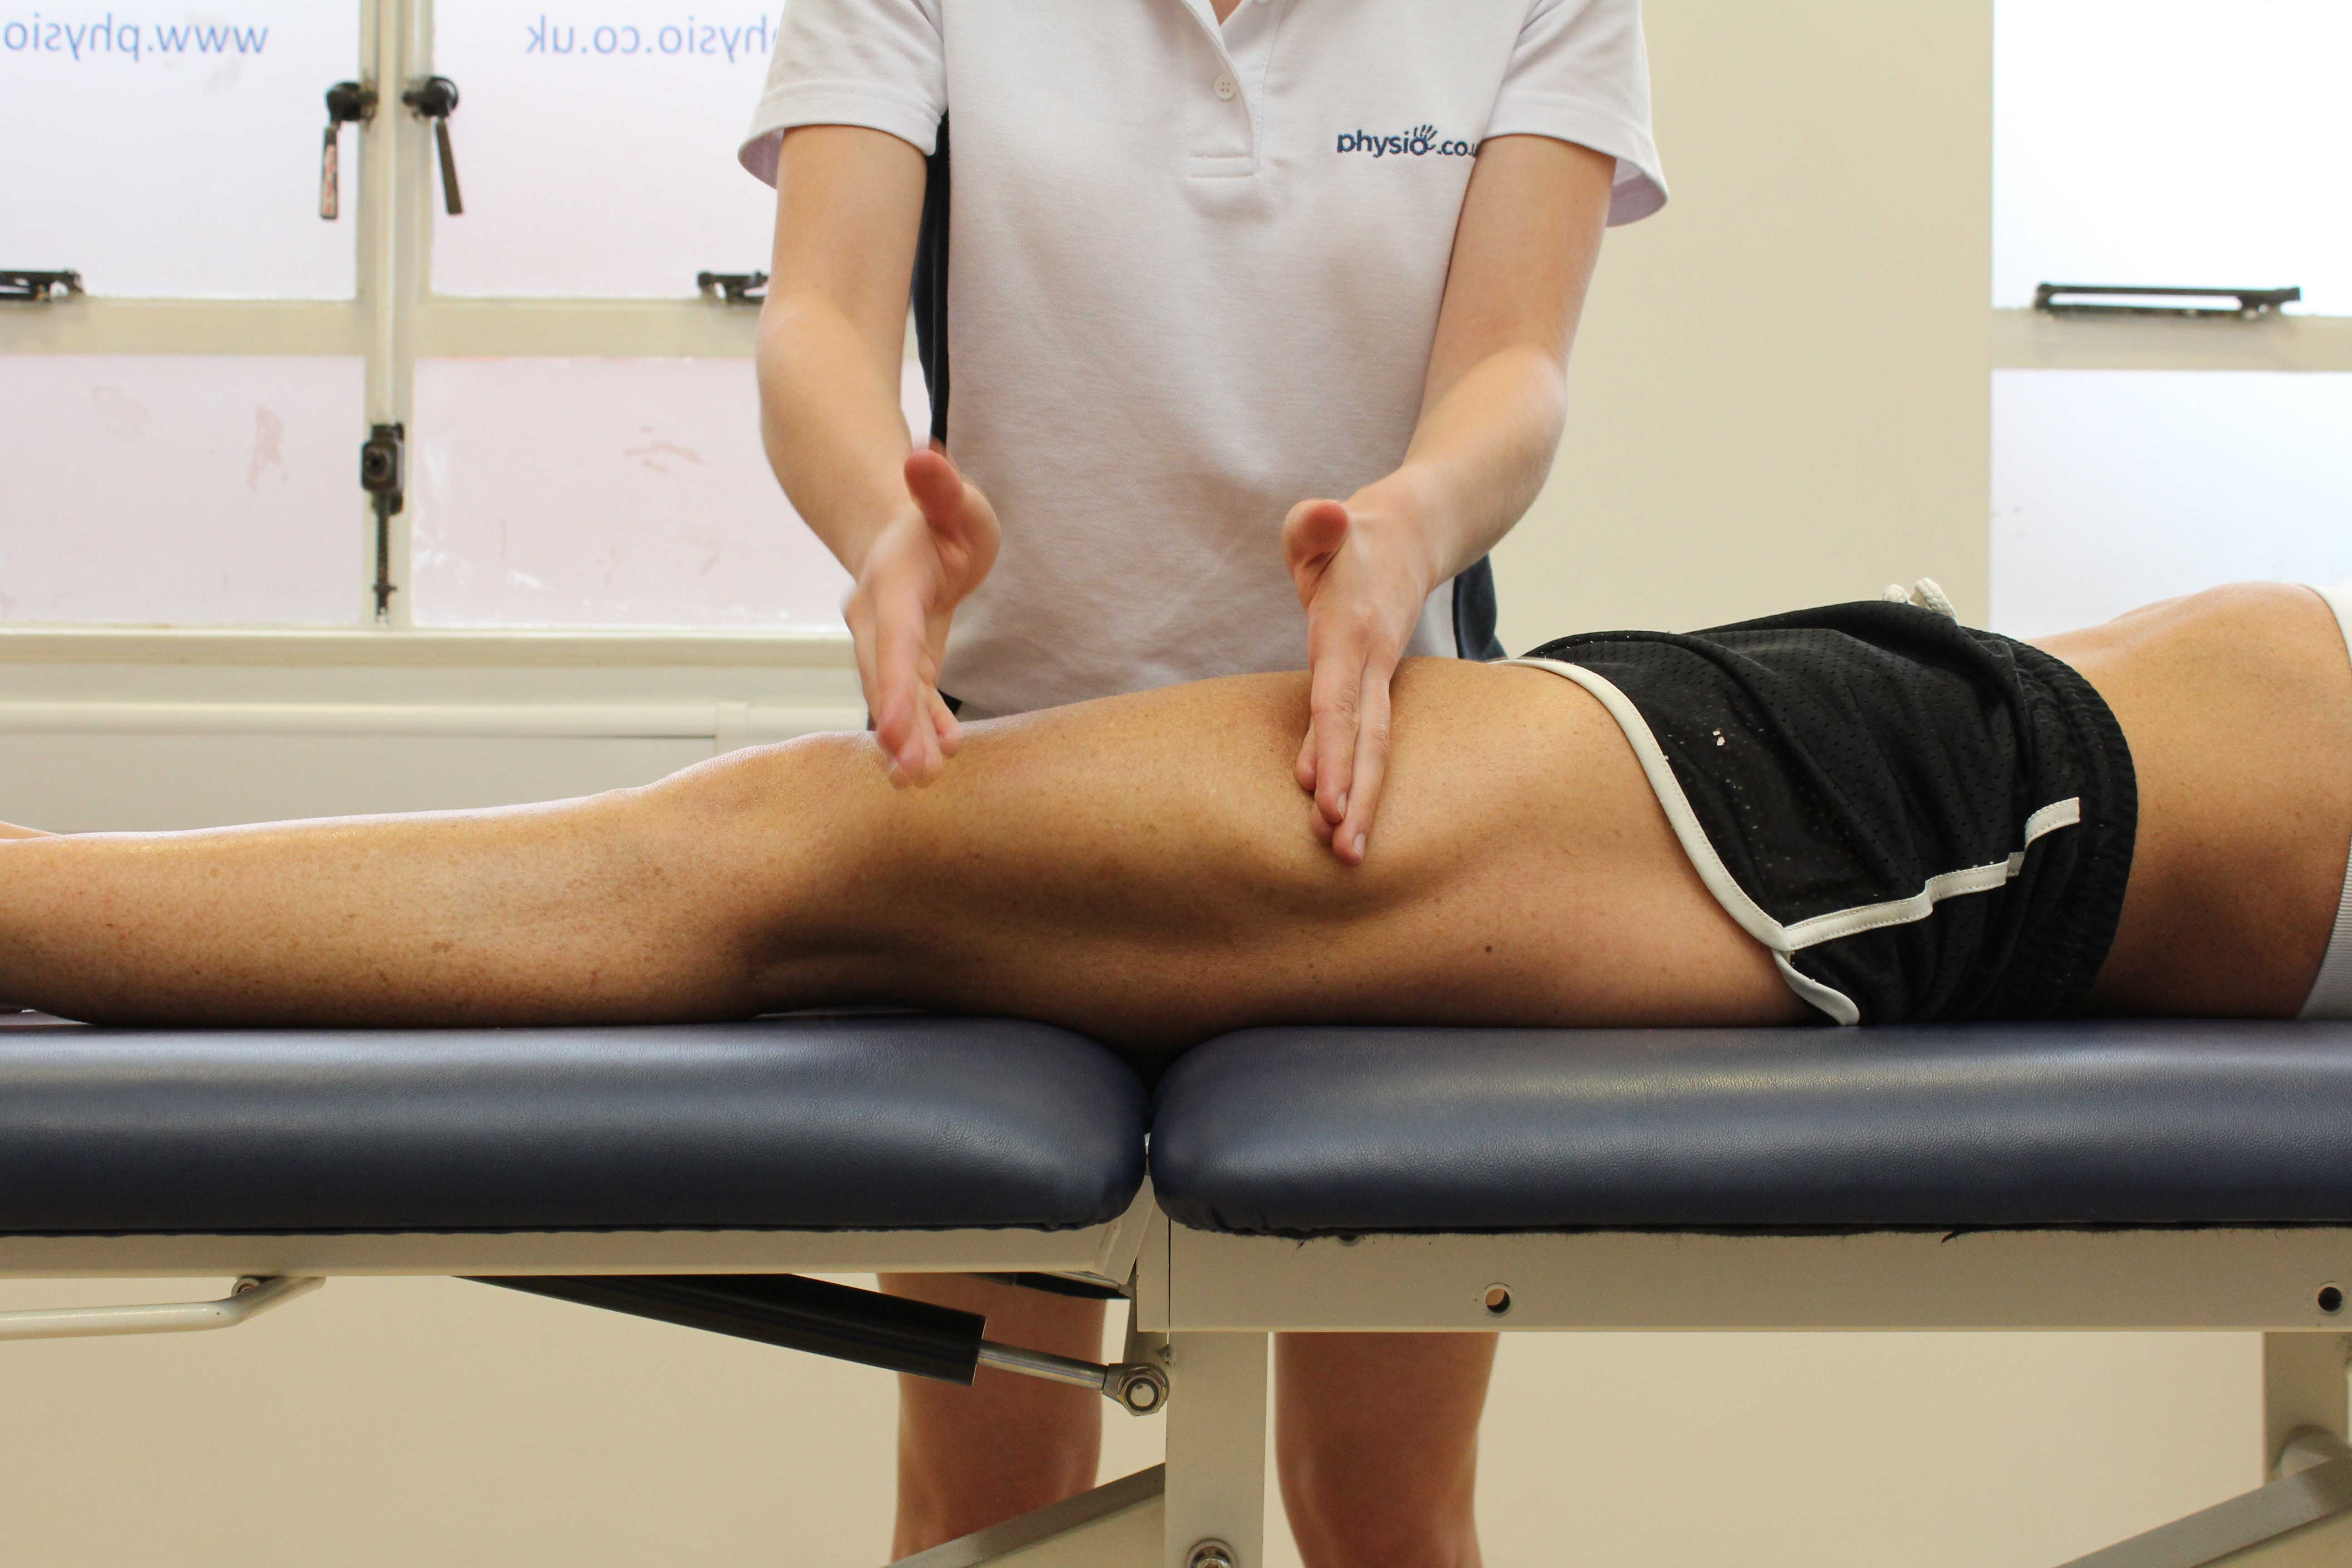 Chopping percussion massage technique applied to rectus femoris and vastus lateralis muscles